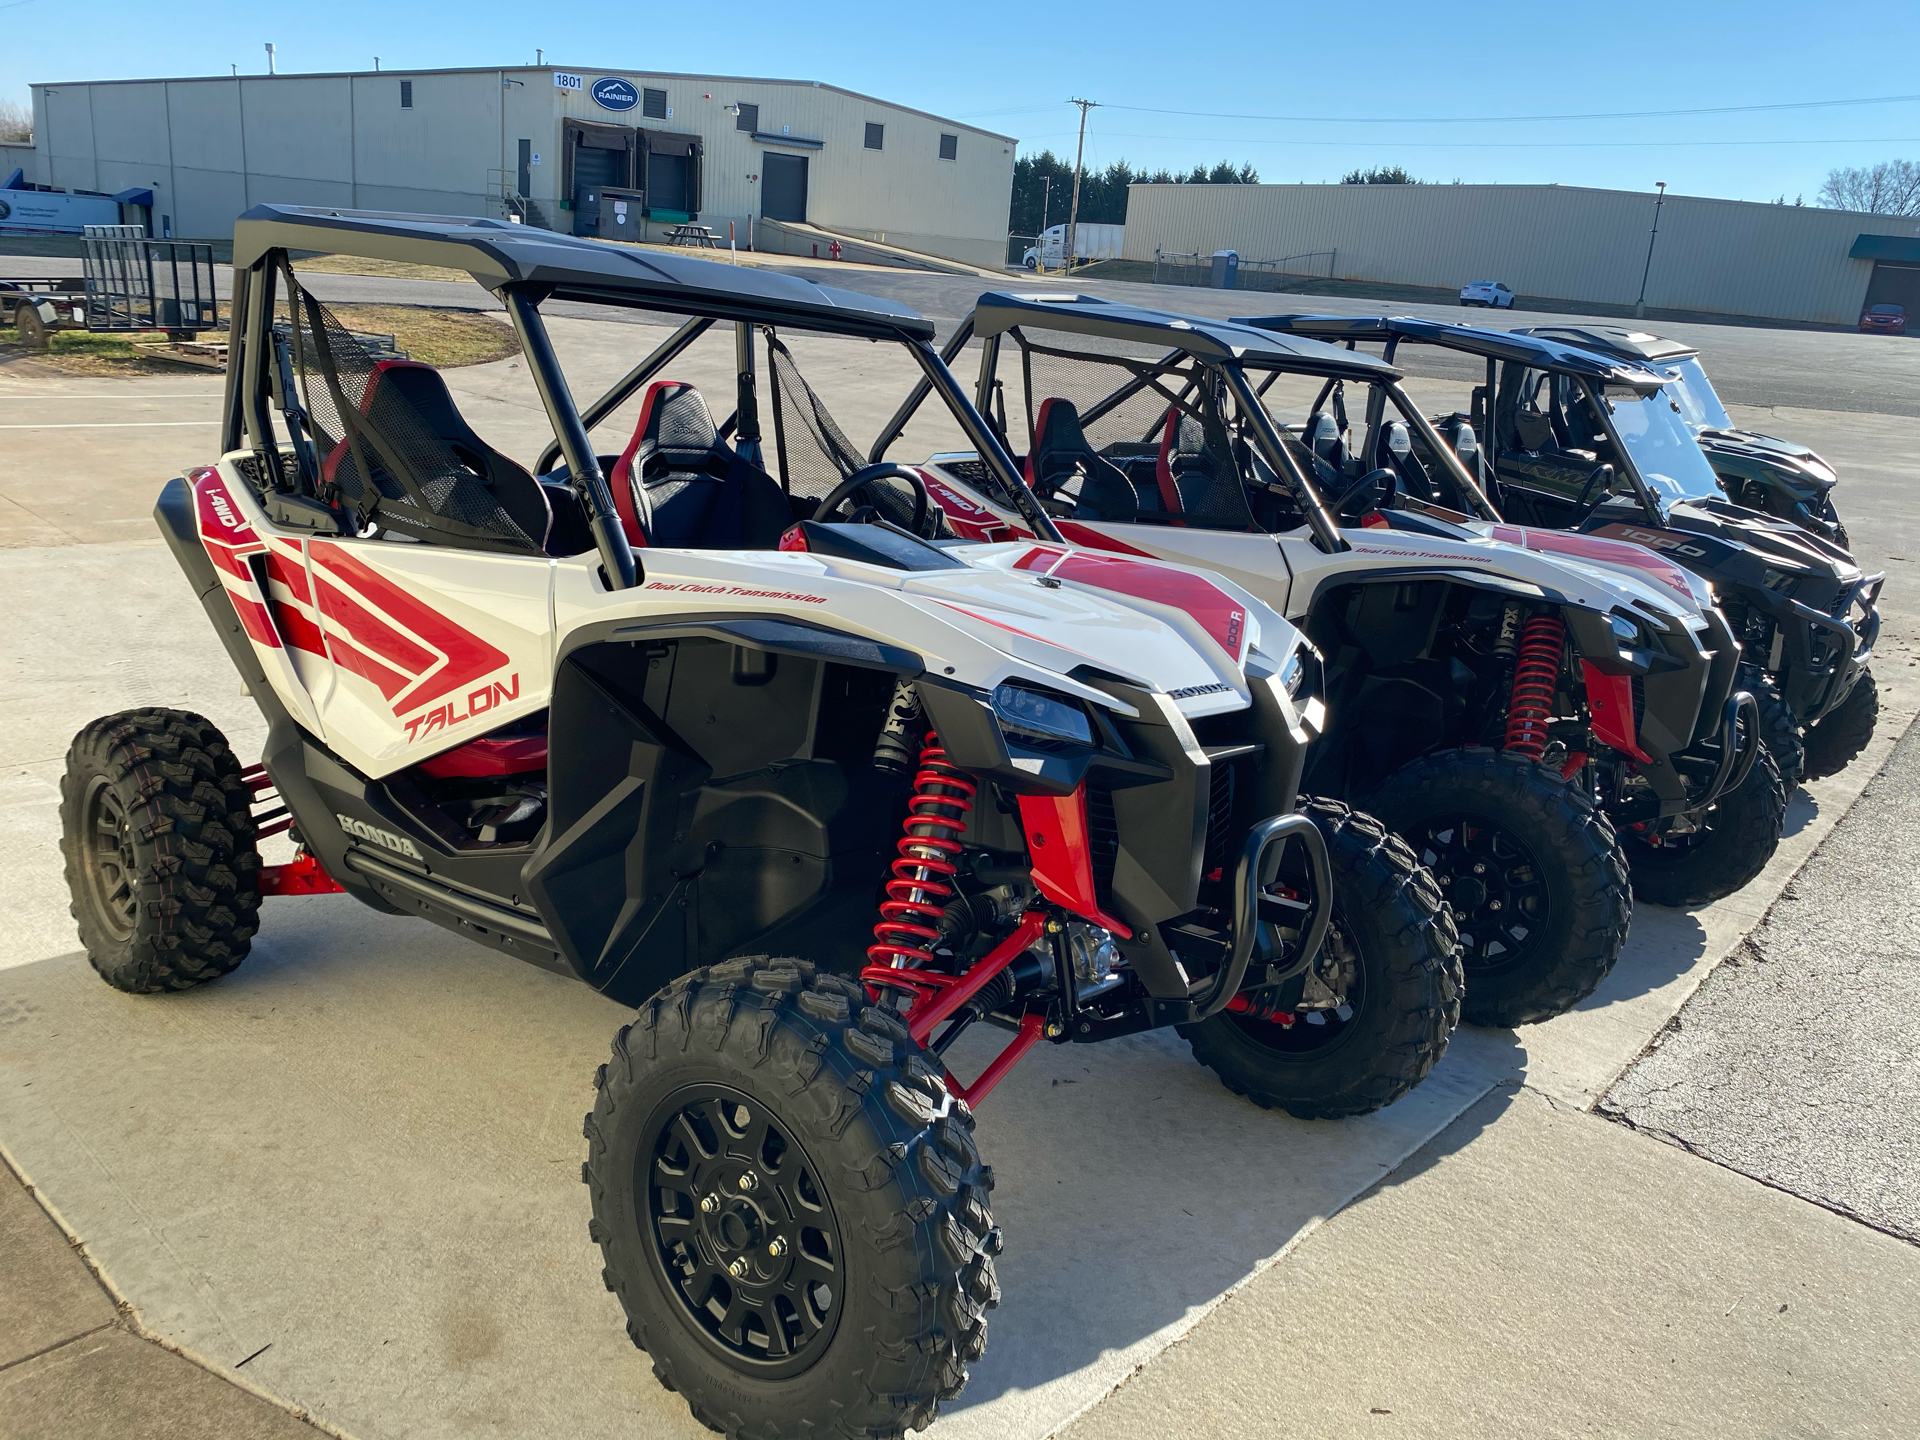 2021 Honda Talon 1000R in Statesville, North Carolina - Photo 2